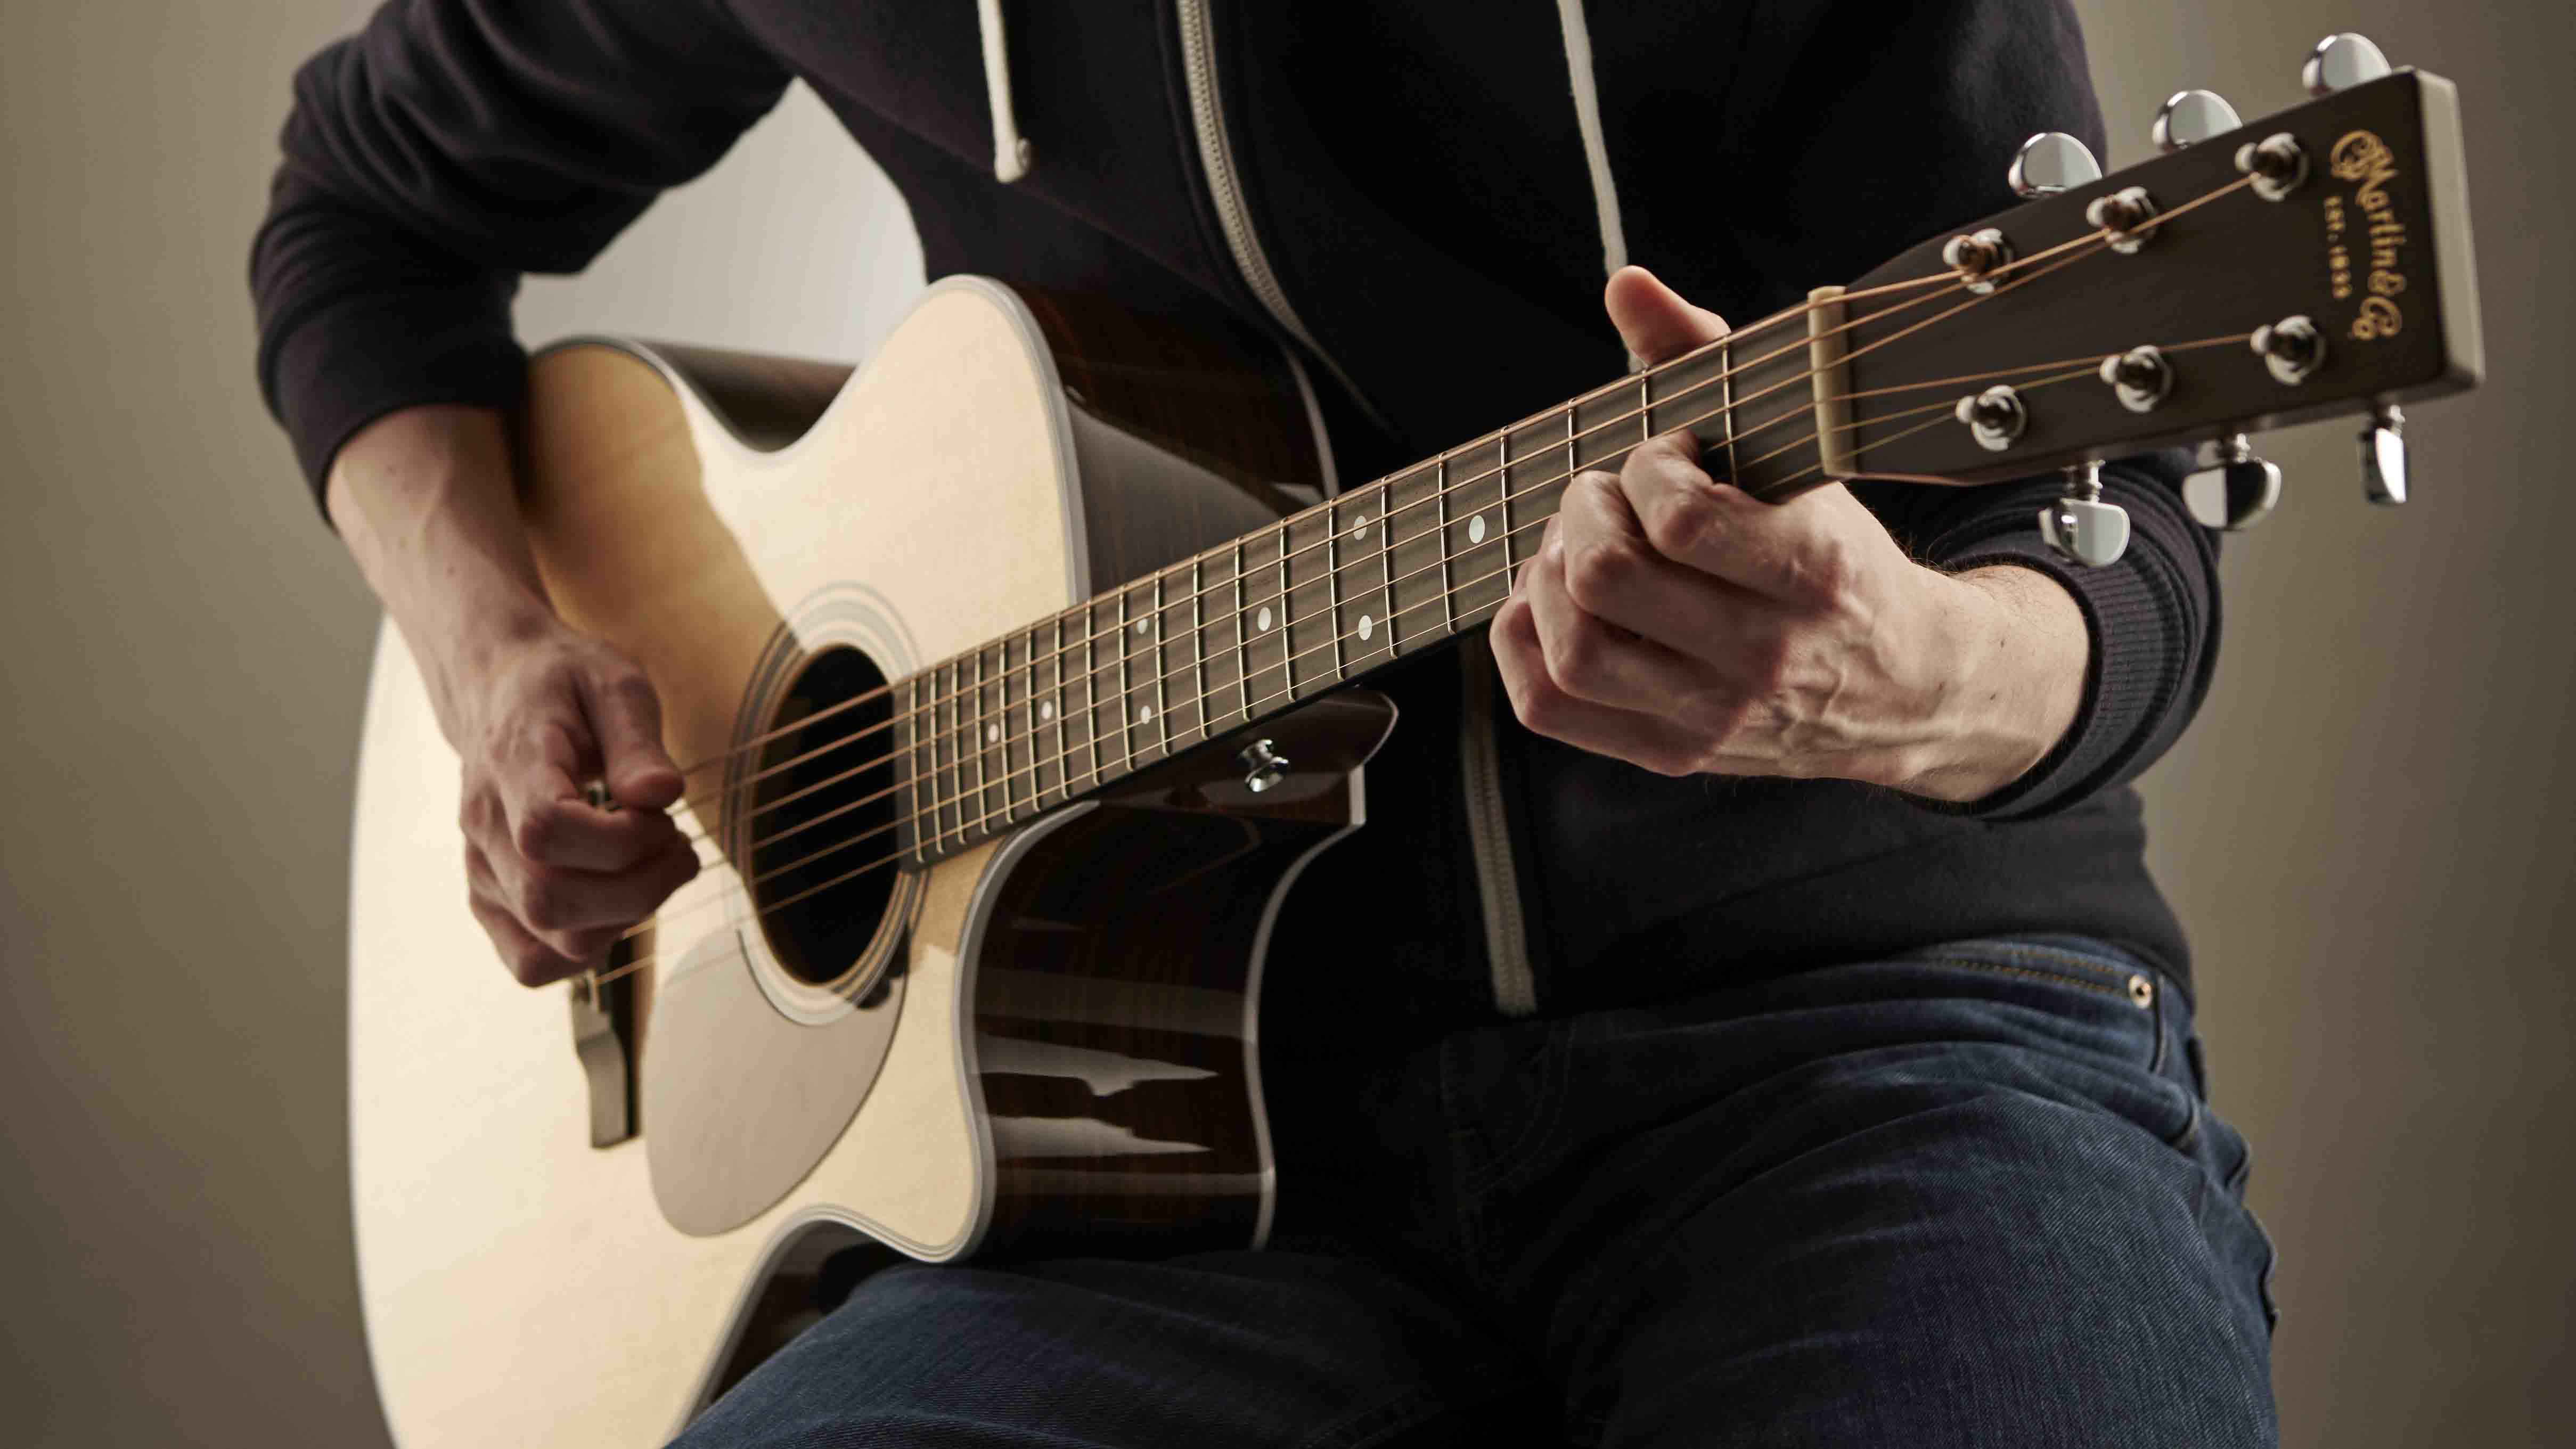 10 chords every beginner guitarist should know